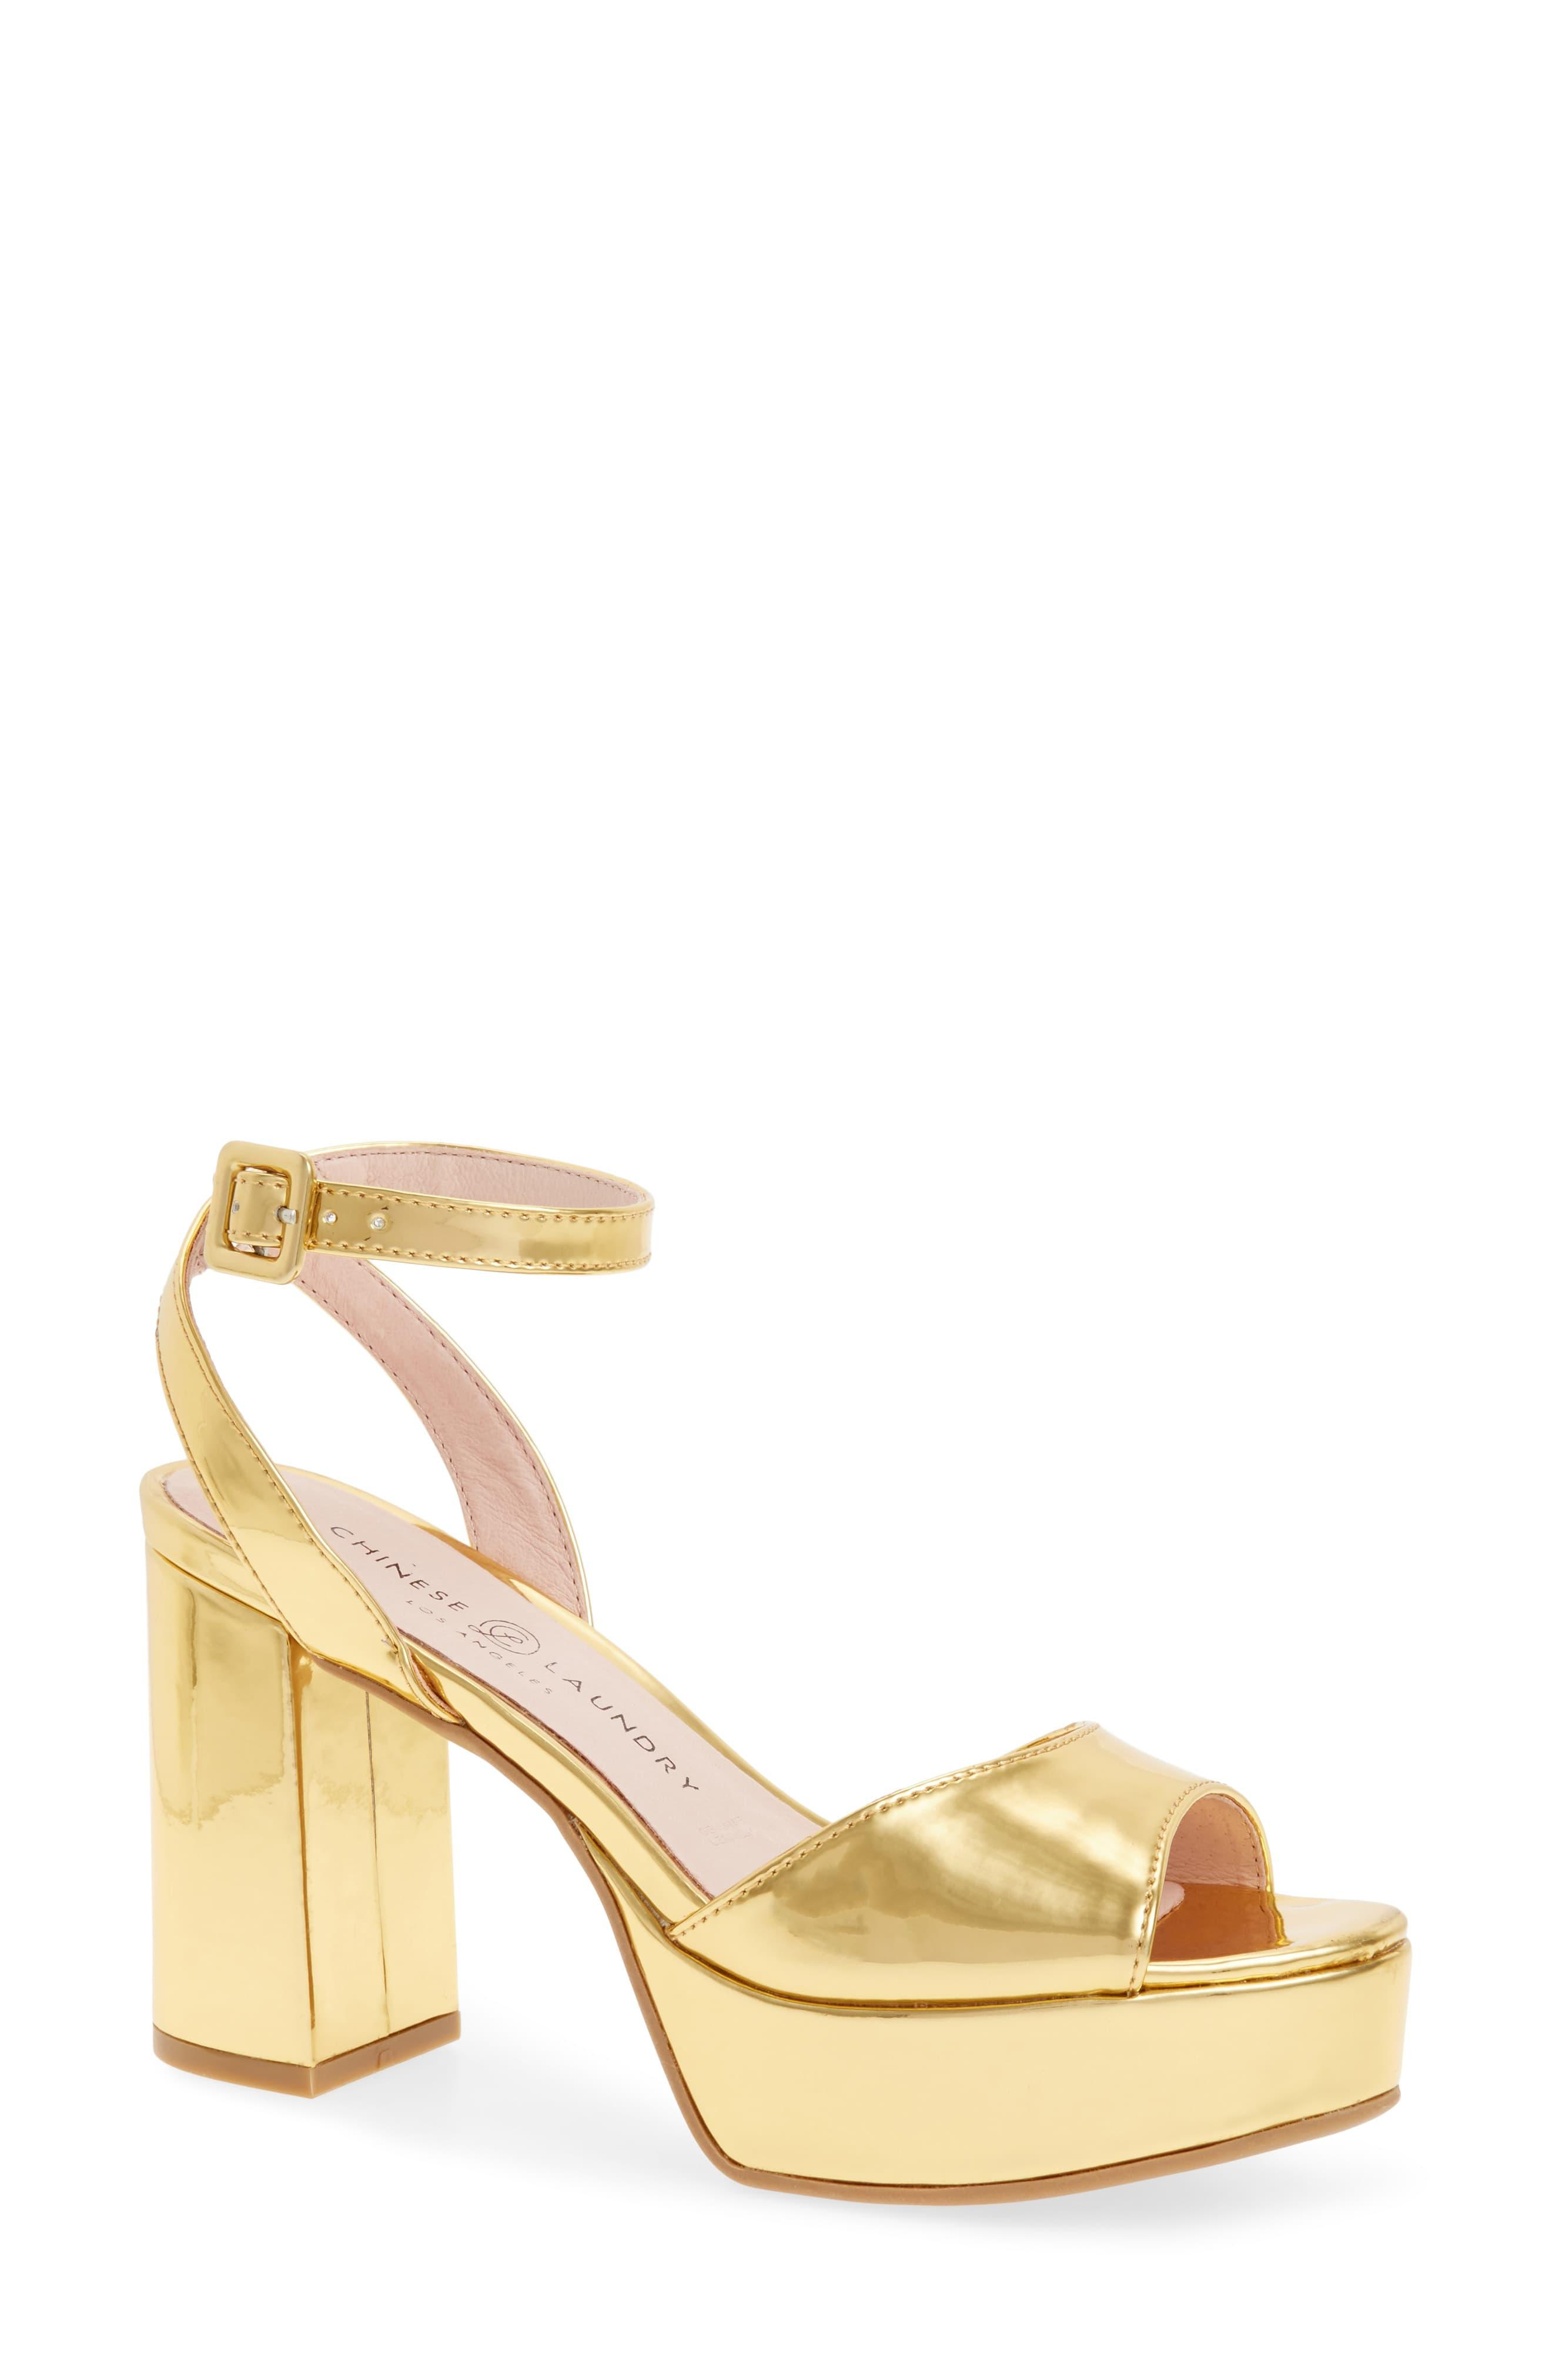 b55b32f3663 Women's Metallic Theresa Platform Sandal